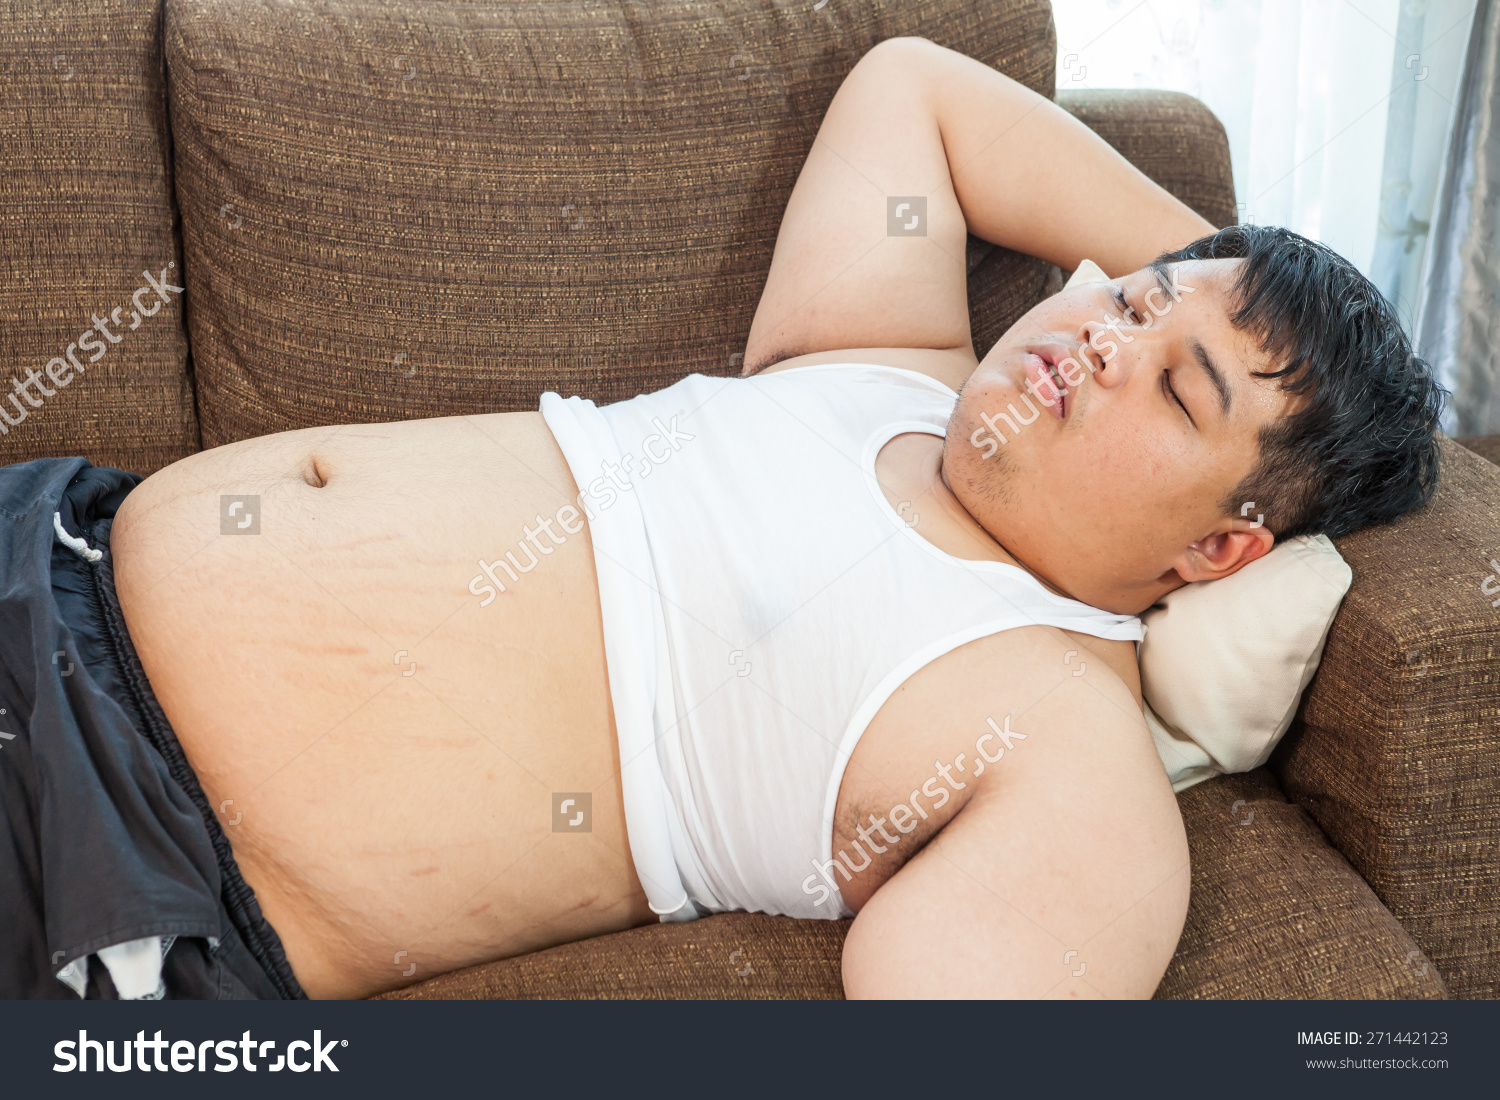 stock-photo-fat-asian-man-sleeping-on-the-couch-271442123.jpg